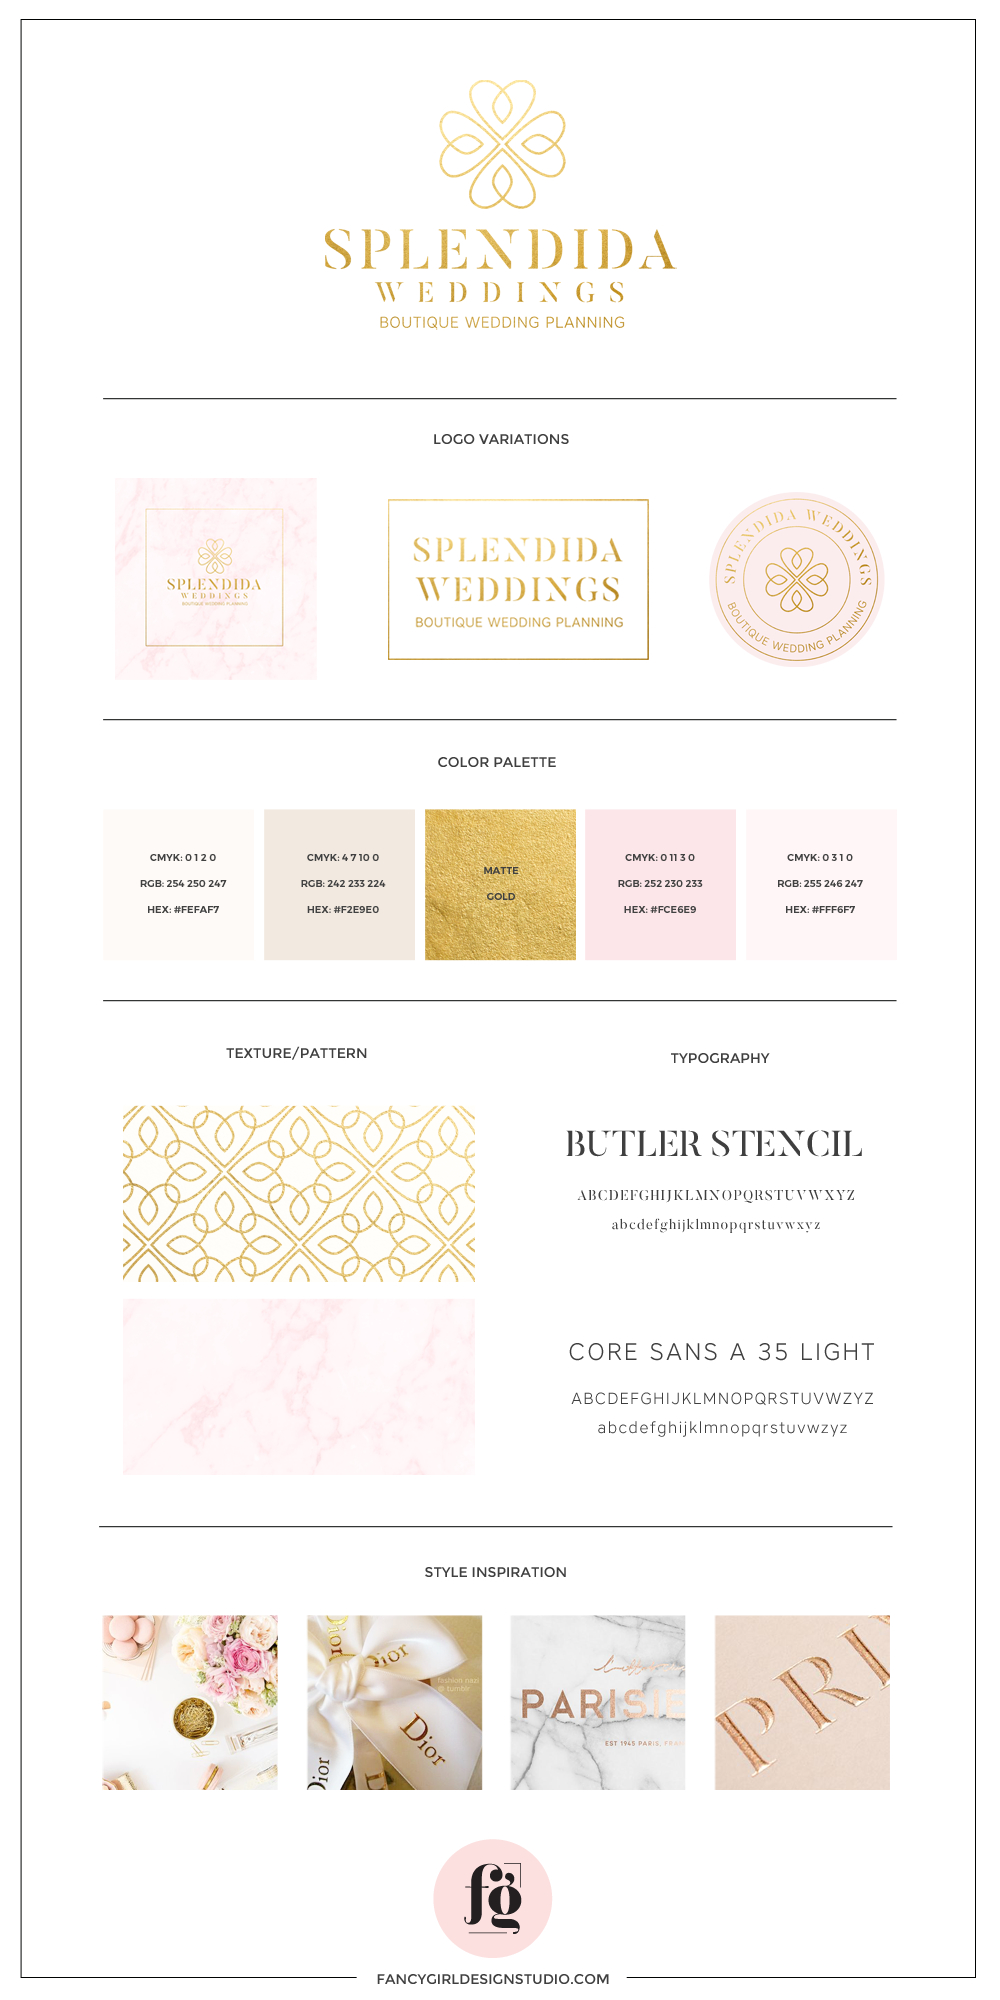 SPLENDIDA WEDDINGS BRAND BOARD